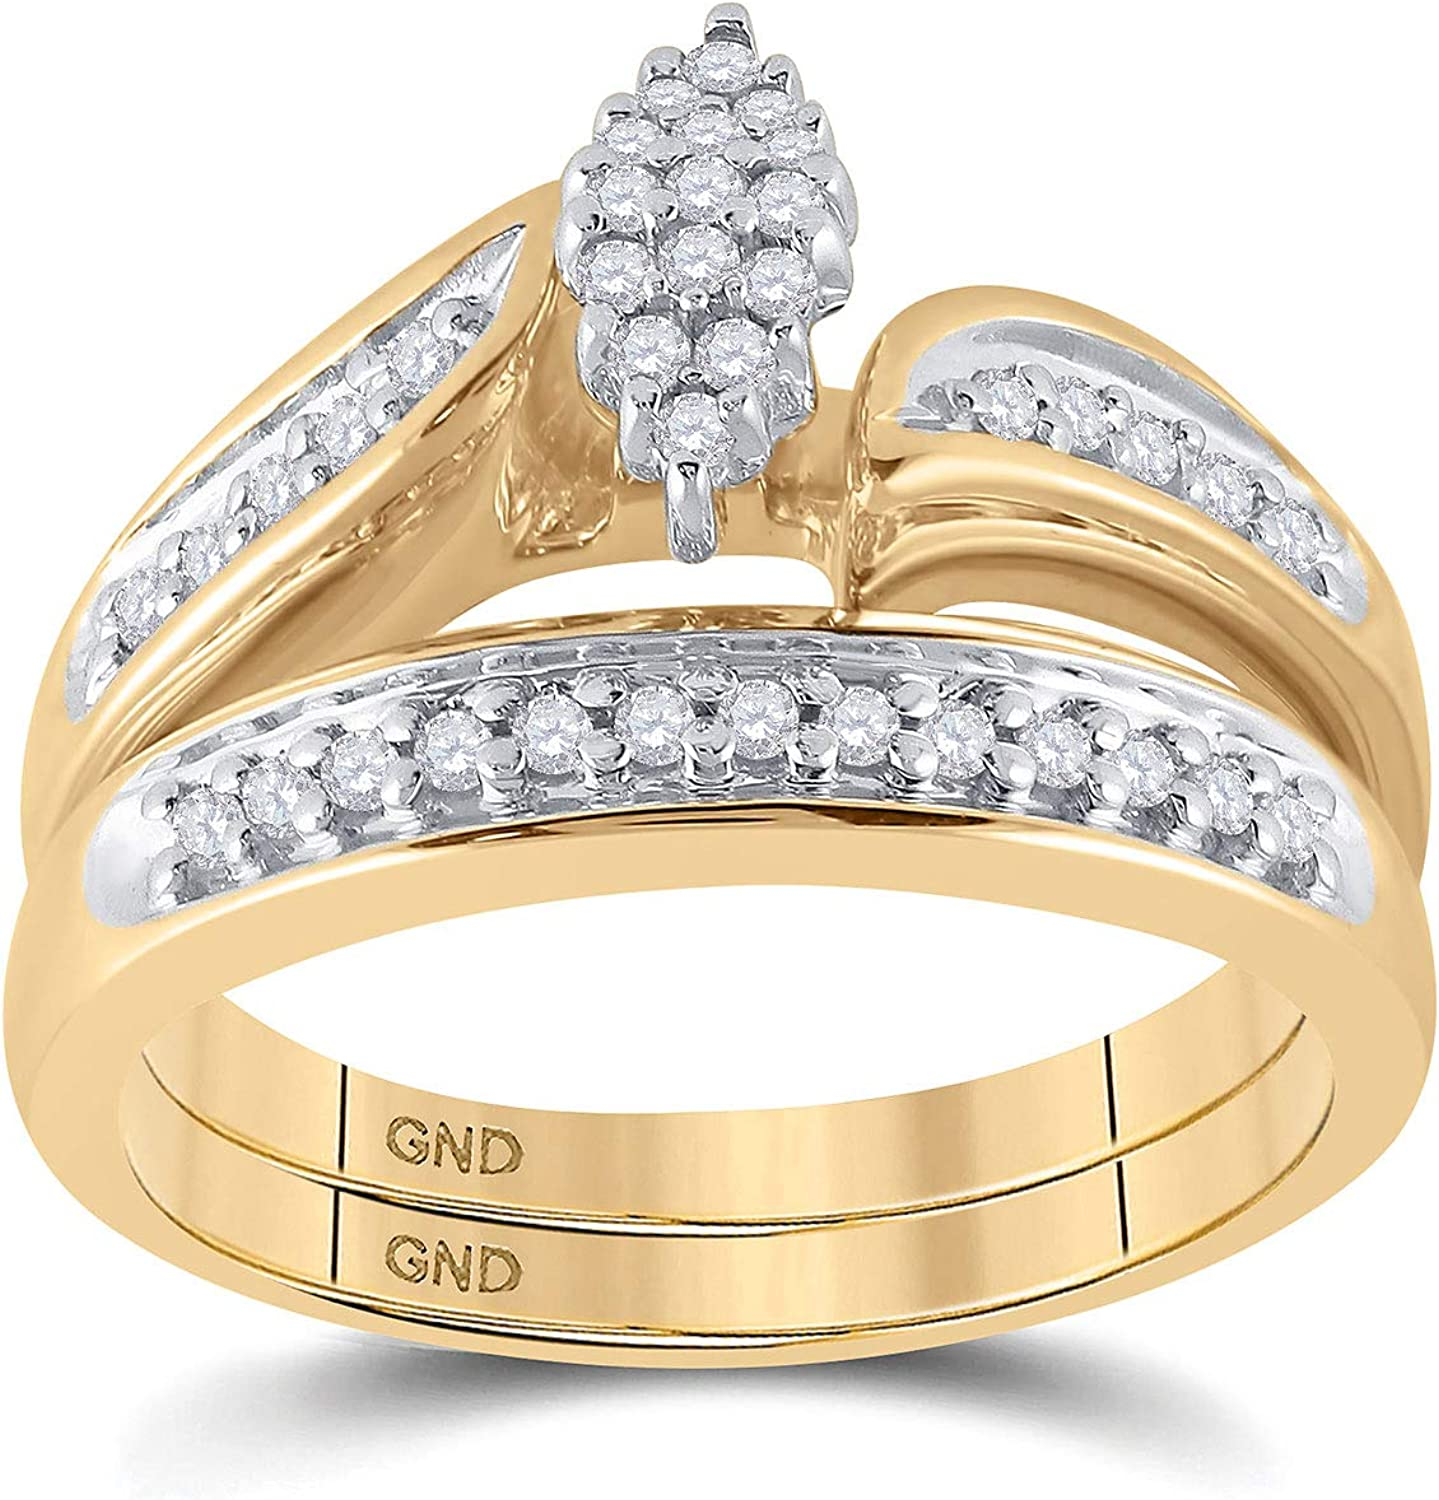 10kt Yellow Gold Tampa Mall Round It is very popular Diamond Bridal Set Wedding Ring 1 Band 4